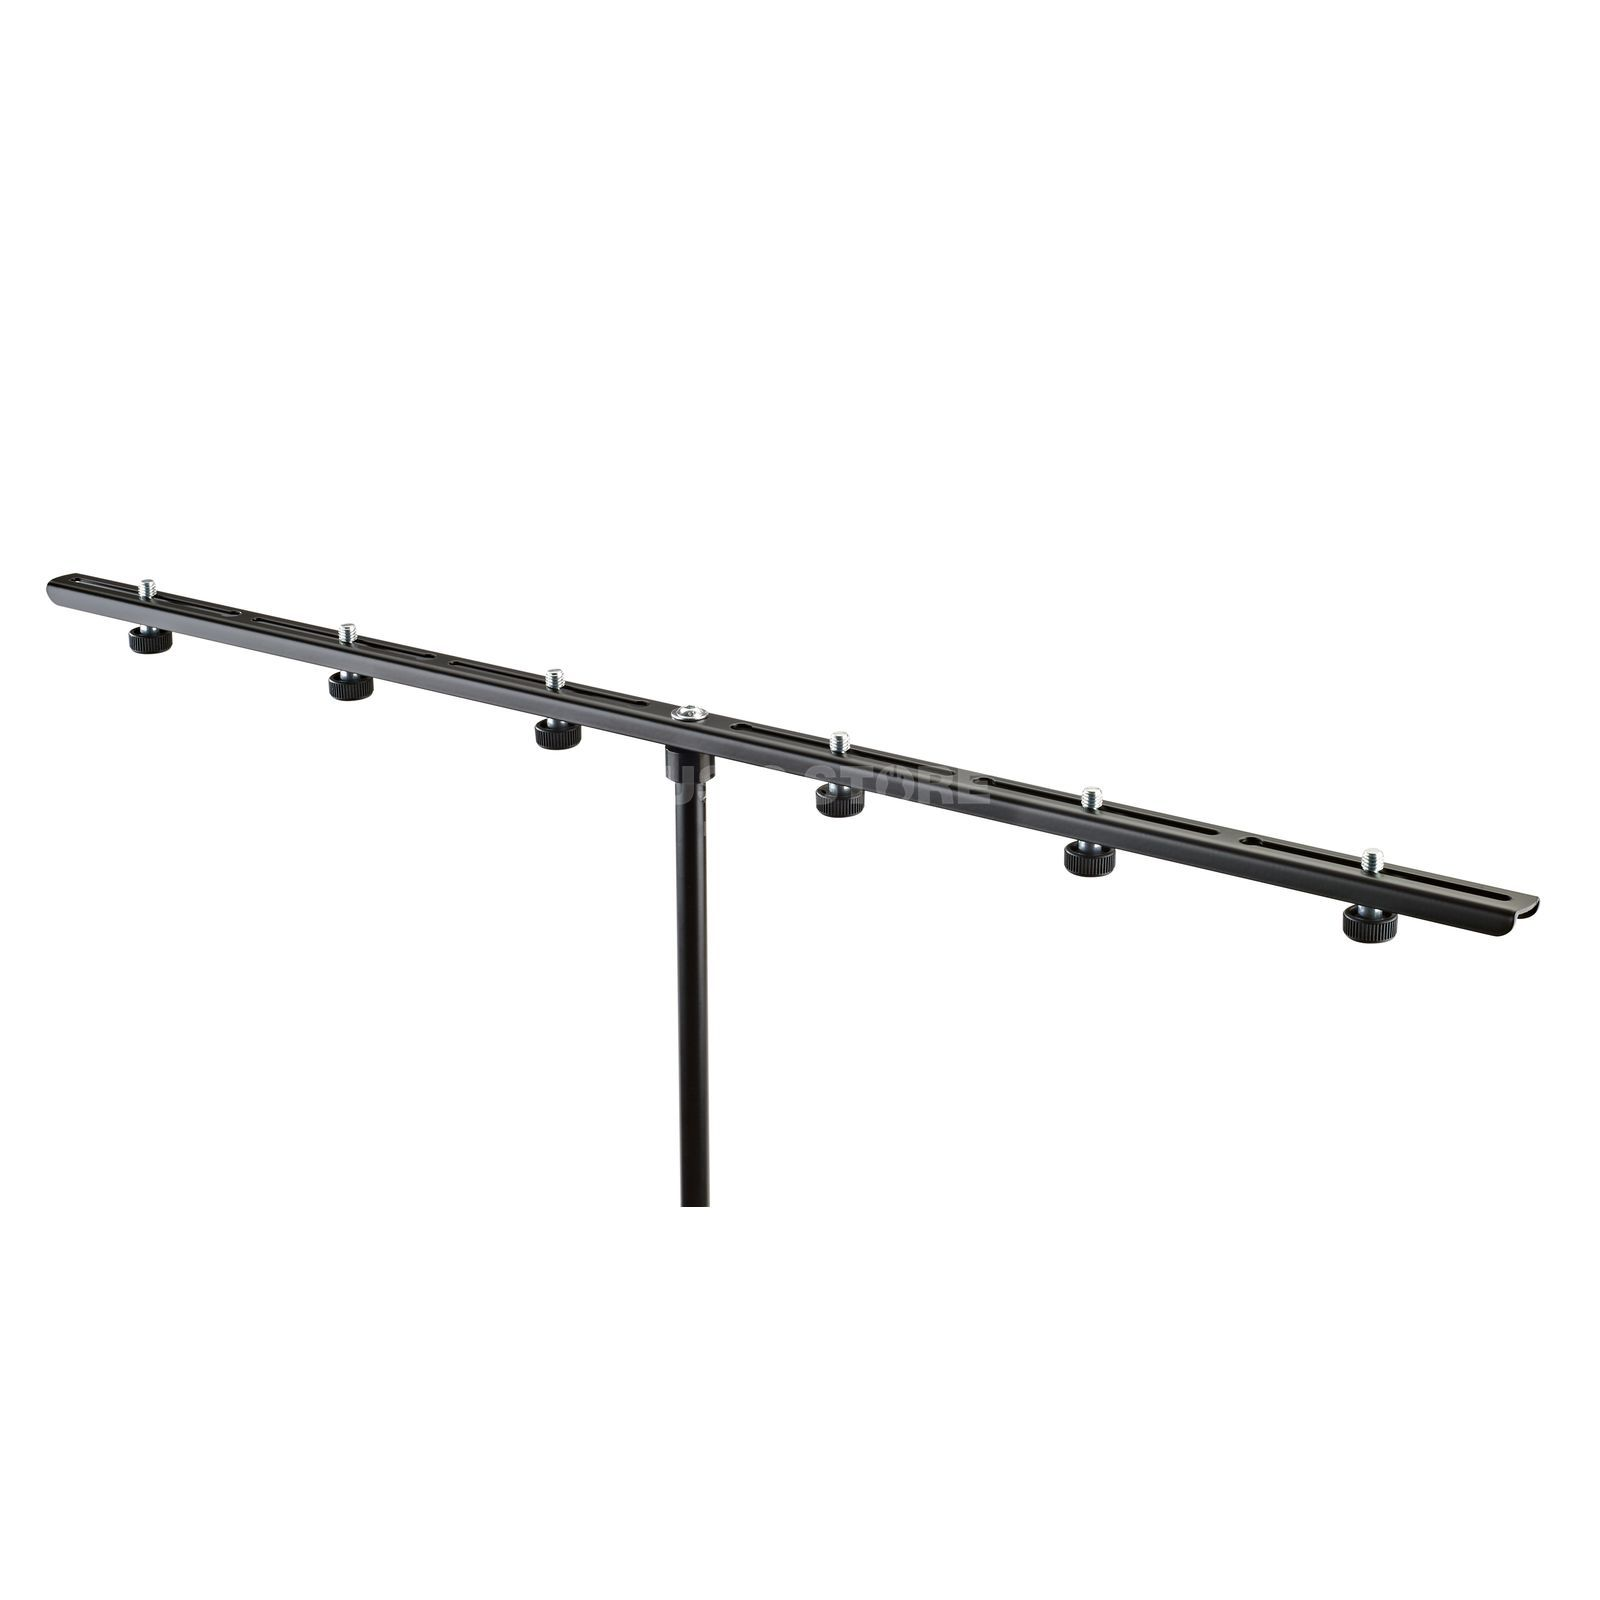 König & Meyer 23560 Microphone bar - black Product Image